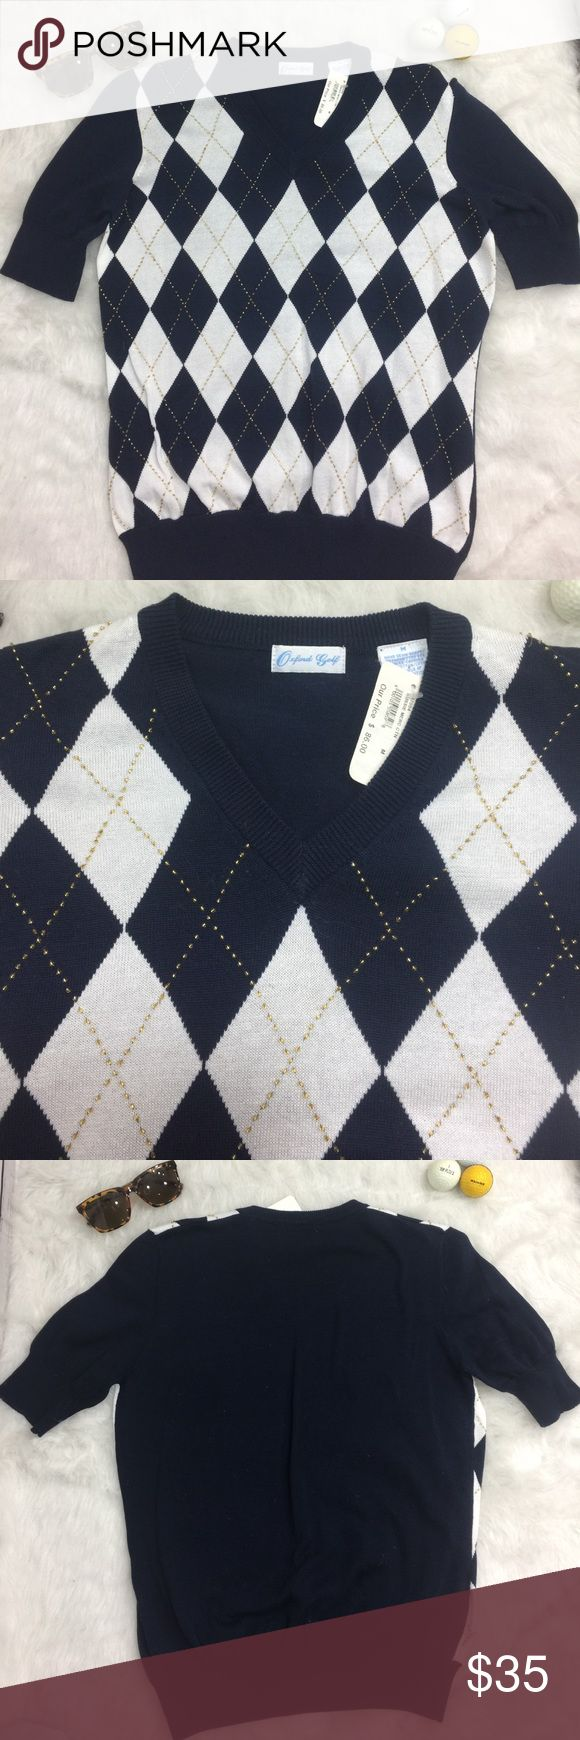 Vintage Oxford golf sweater argyle Vintage ladies Argyle golf sweater new with tags has blue and white argyle pattern with gold beads design. 100% cotton oxford golf Tops